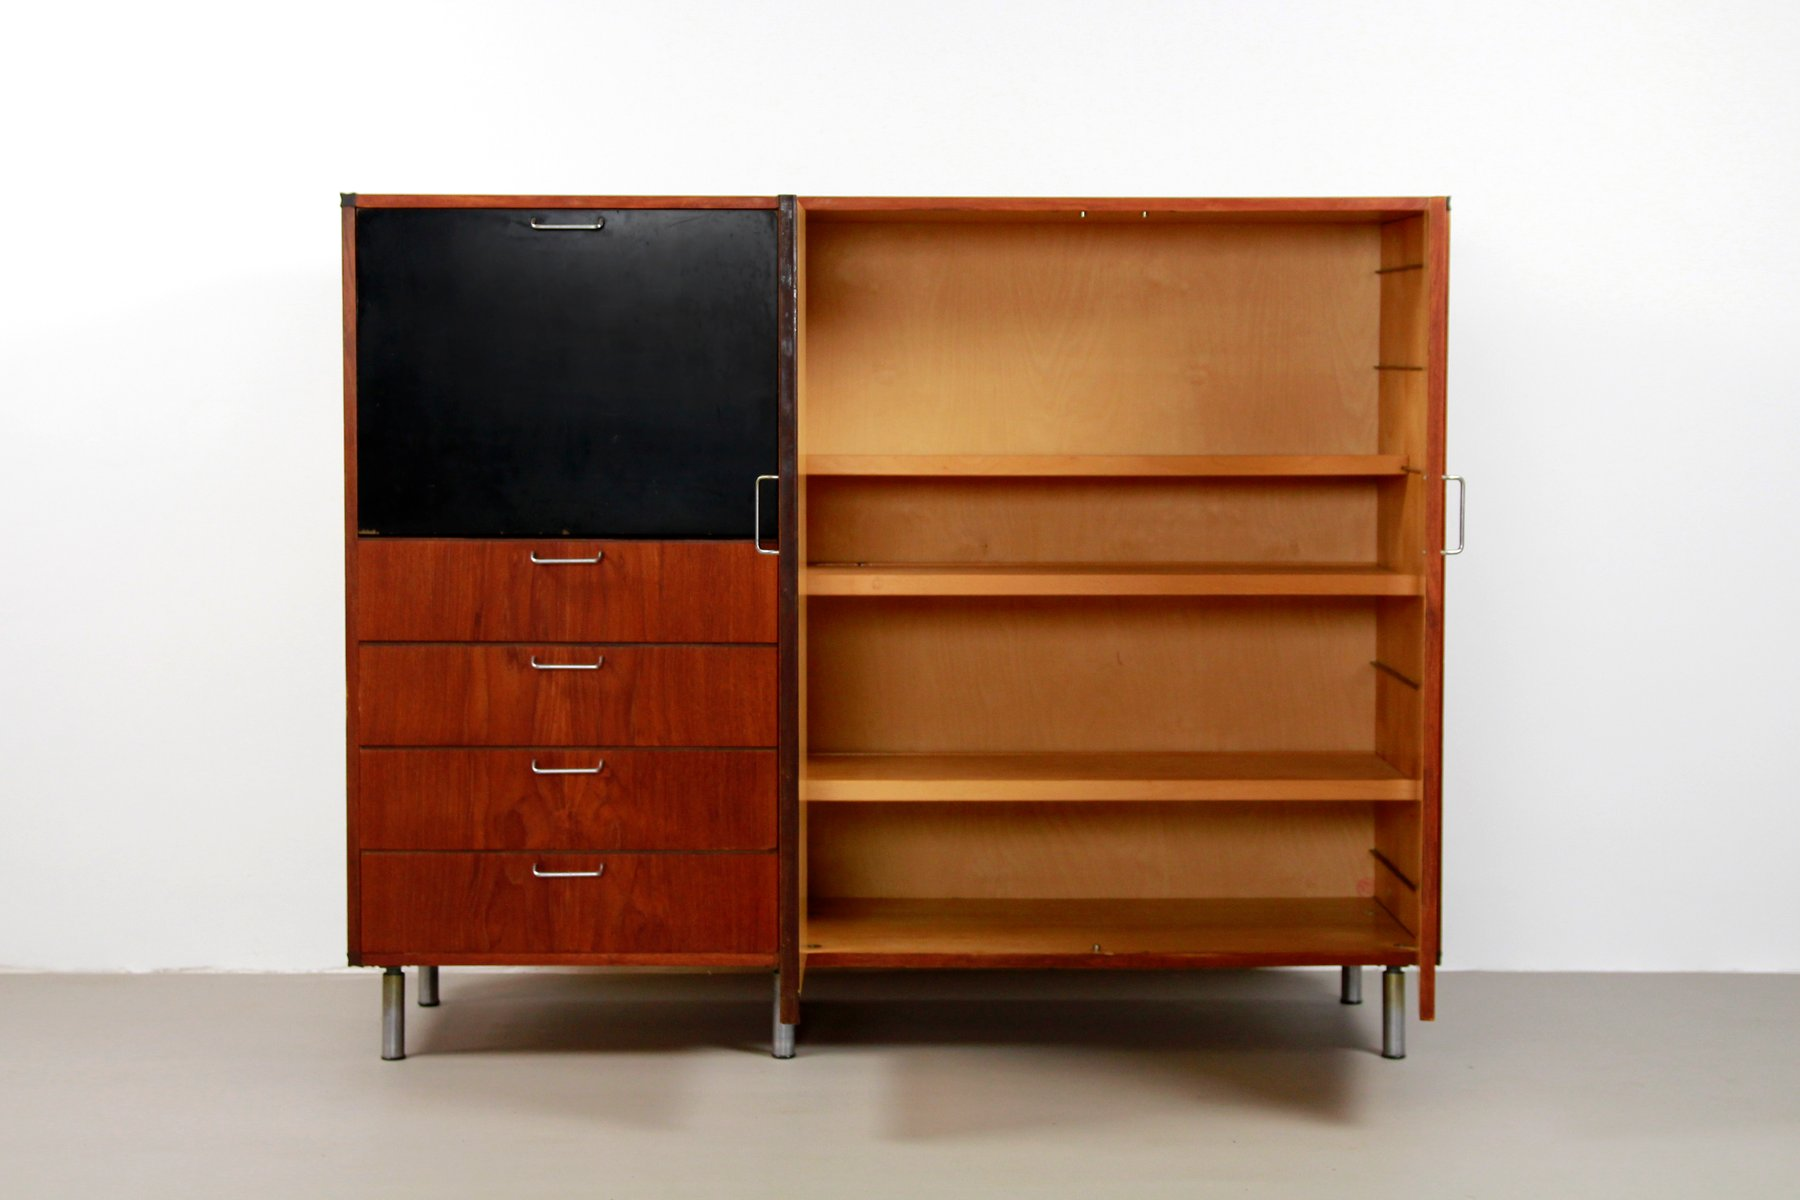 Dutch Modernist Made to Measure Cabinet by Cees Braakman